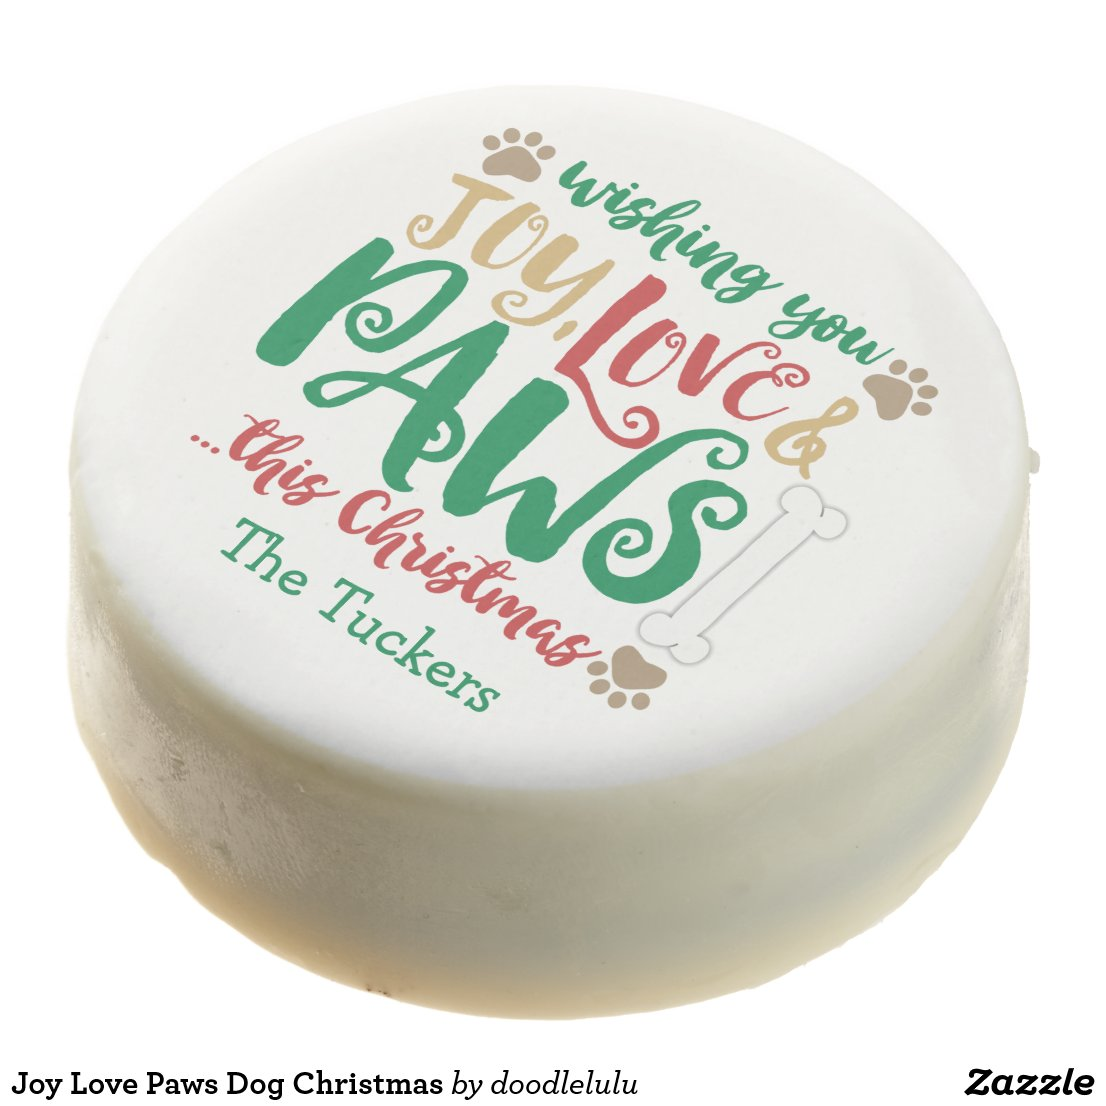 Joy Love Paws Dog Christmas Chocolate Covered Oreo